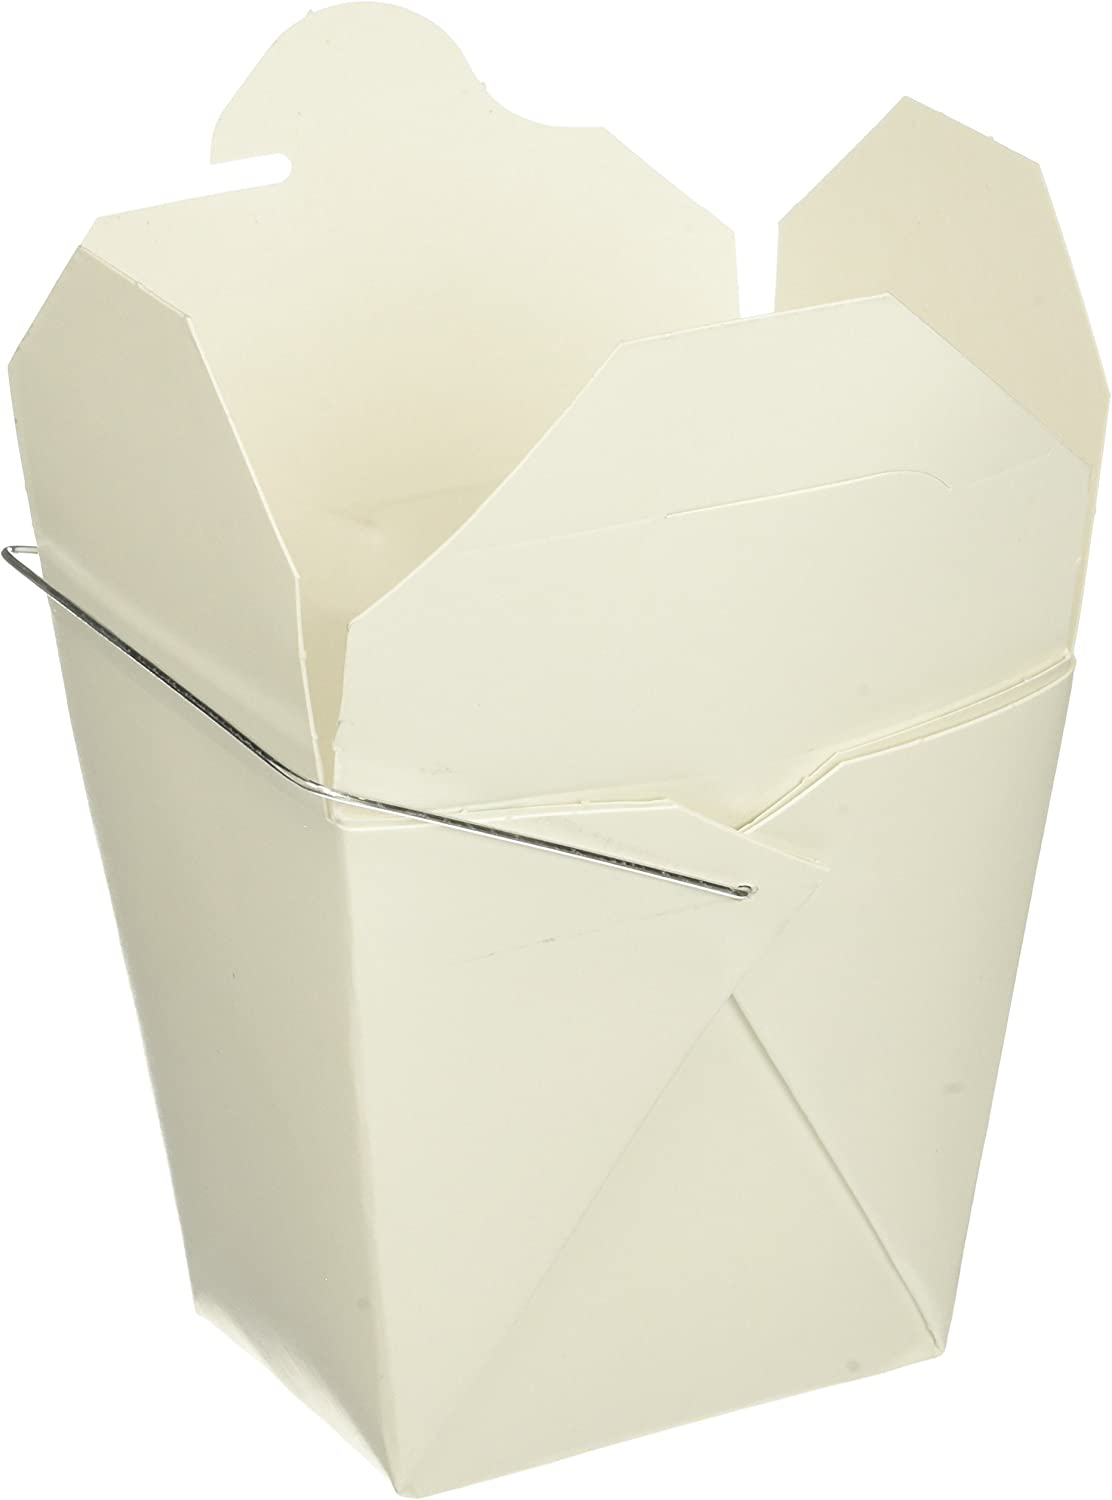 W.Y. INDUSTRIES INC. 16 oz. Chinese Take Out Food Boxes, Lot of 50, White